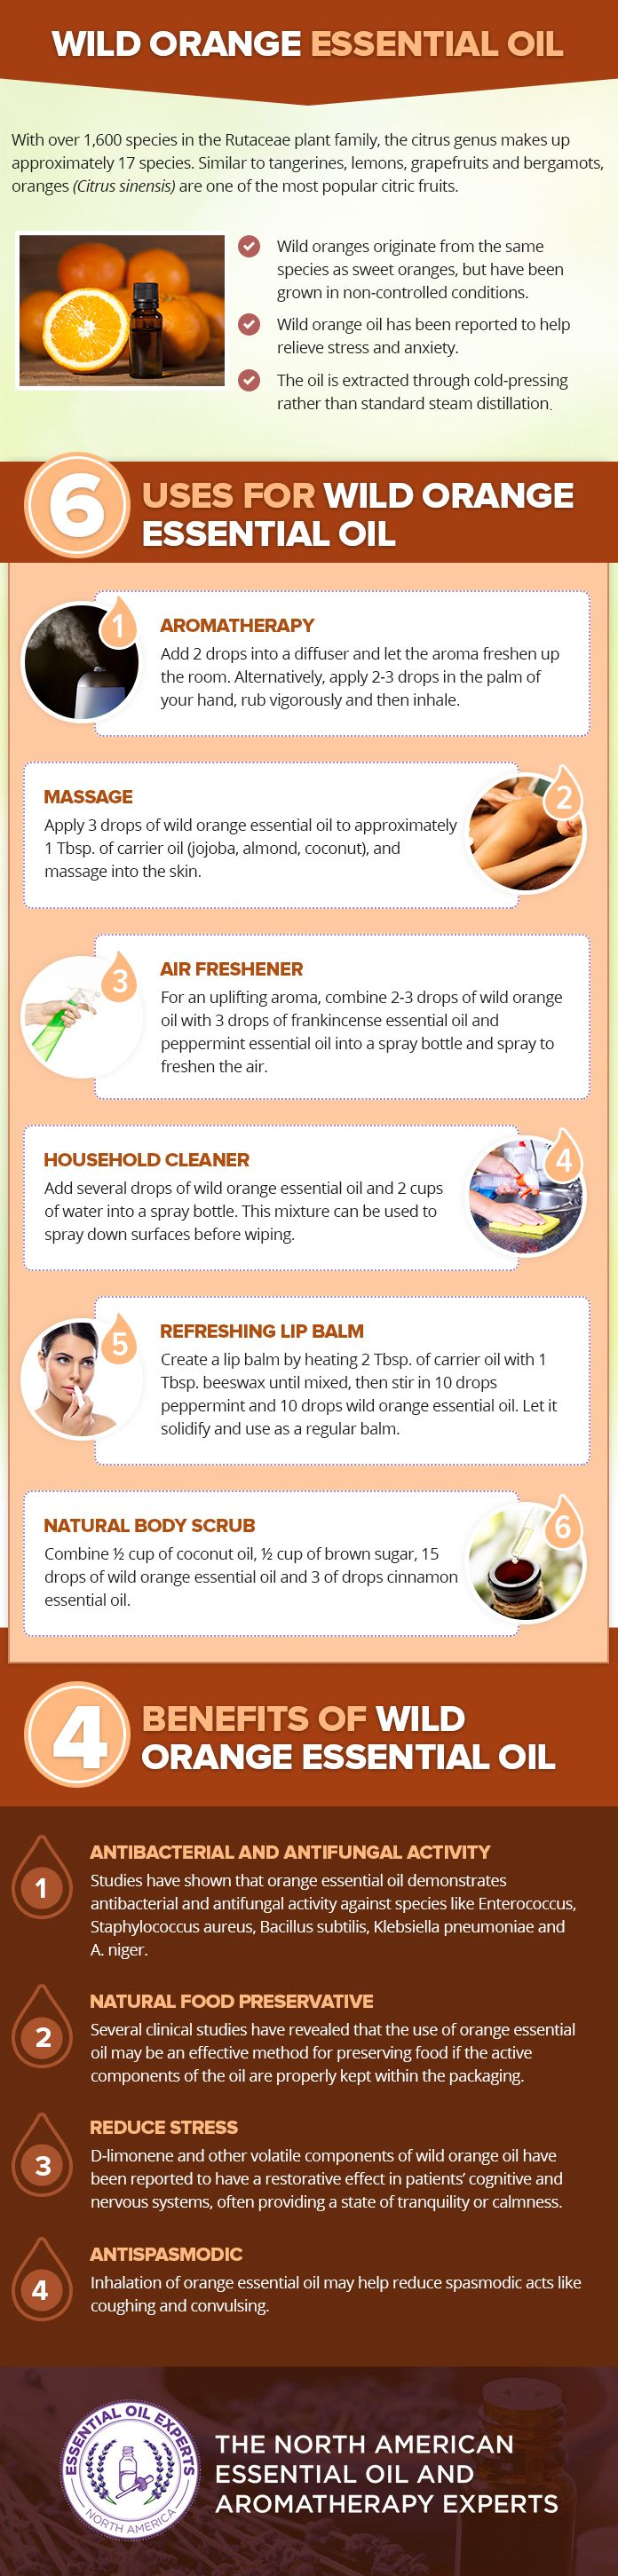 Wild Orange Essential Oil Uses & Benefits